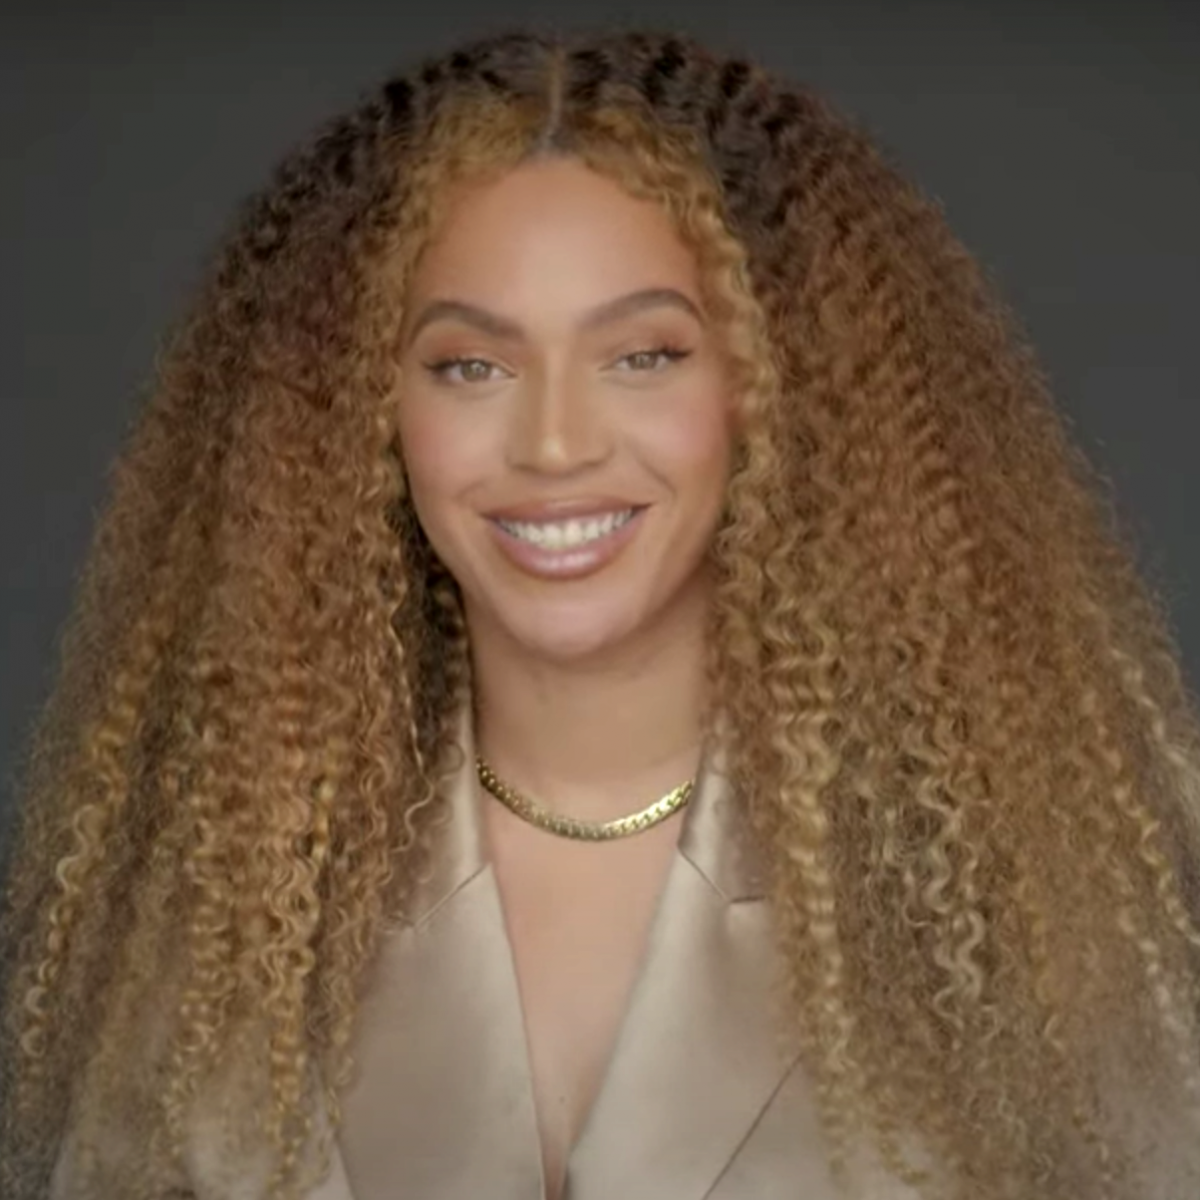 Beyoncé Inspires Class Of 2020 With Powerful Message: 'Real Change Has Started With You'